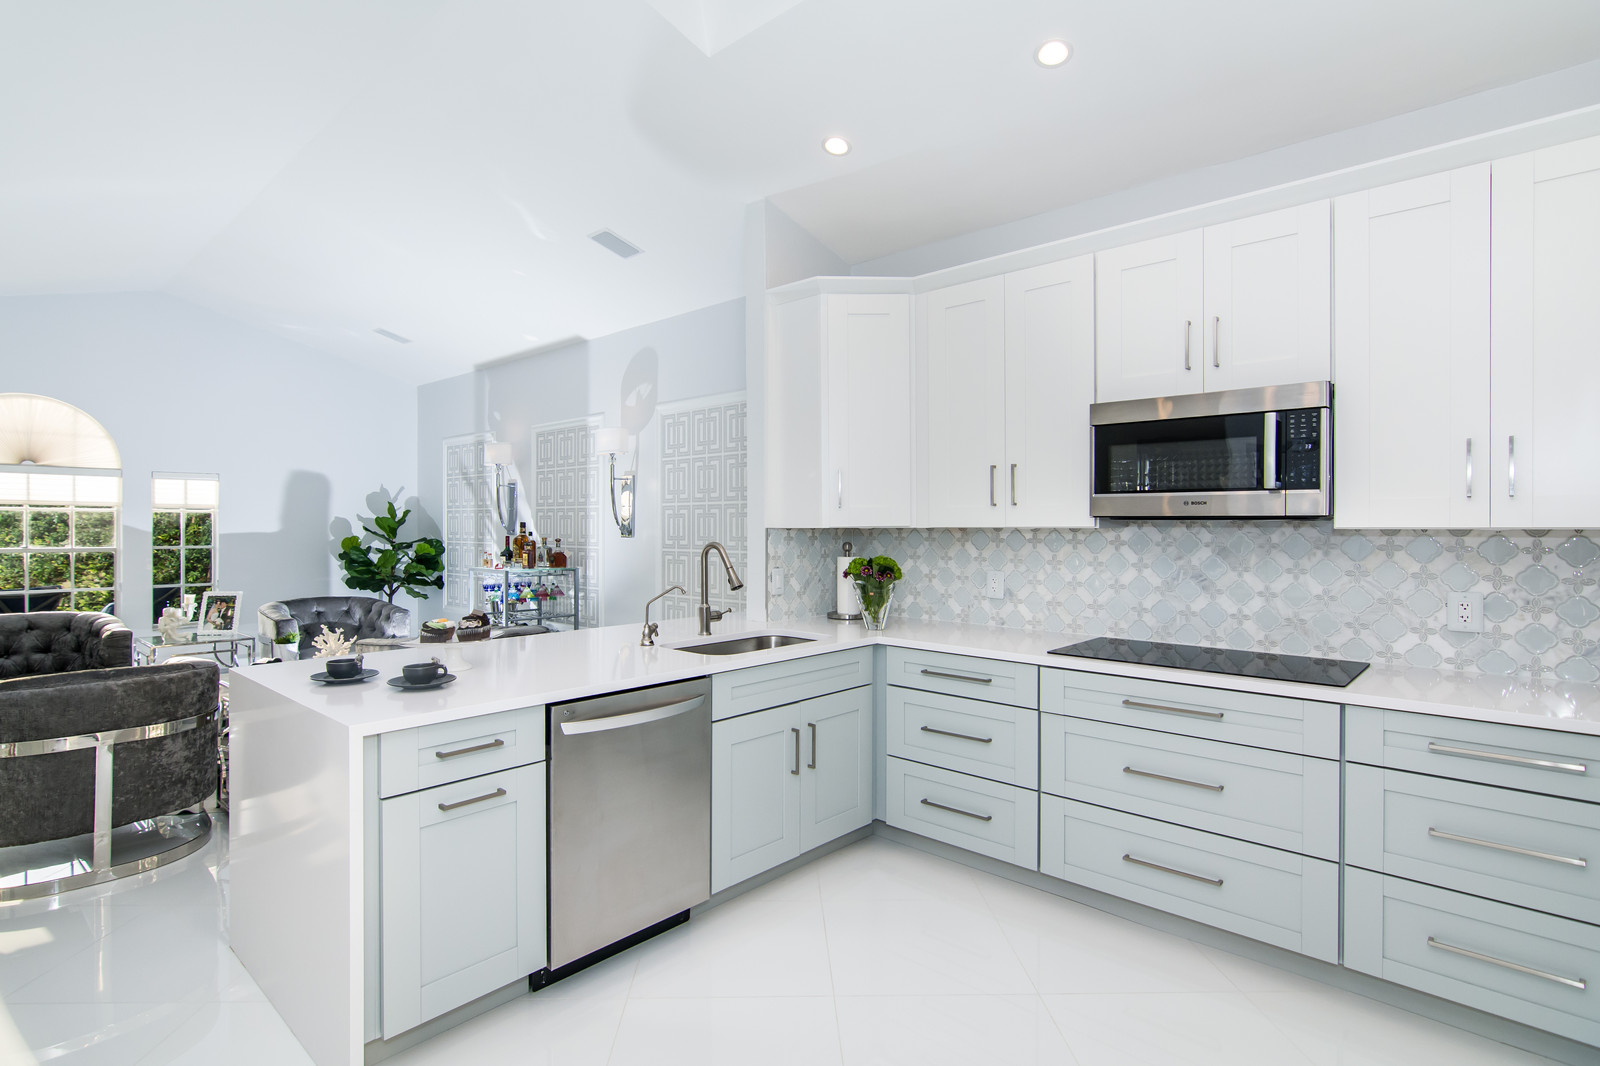 Modern And Contemporary Kitchen Design With Two Tone